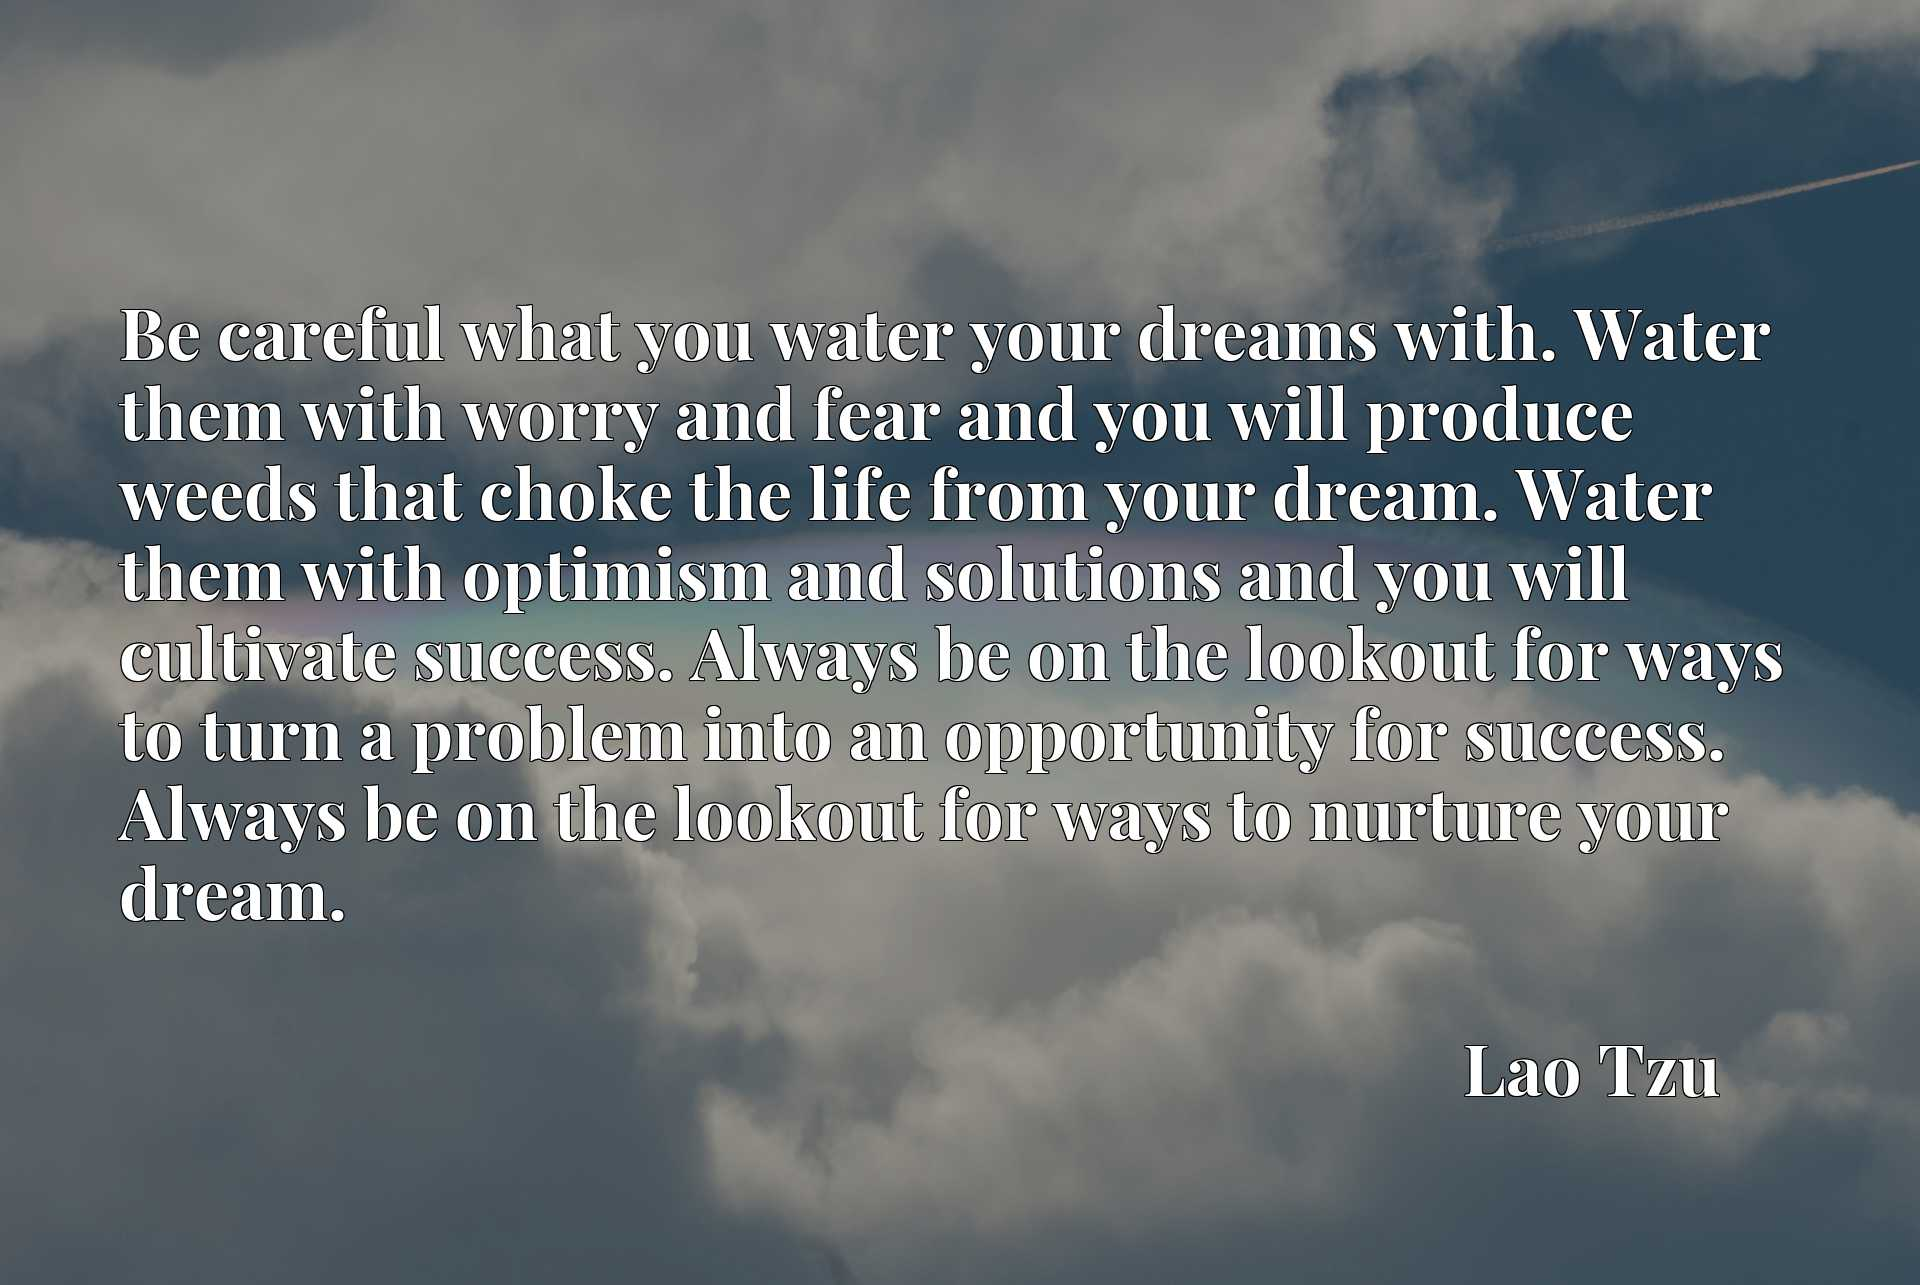 Be careful what you water your dreams with. Water them with worry and fear and you will produce weeds that choke the life from your dream. Water them with optimism and solutions and you will cultivate success. Always be on the lookout for ways to turn a problem into an opportunity for success. Always be on the lookout for ways to nurture your dream.